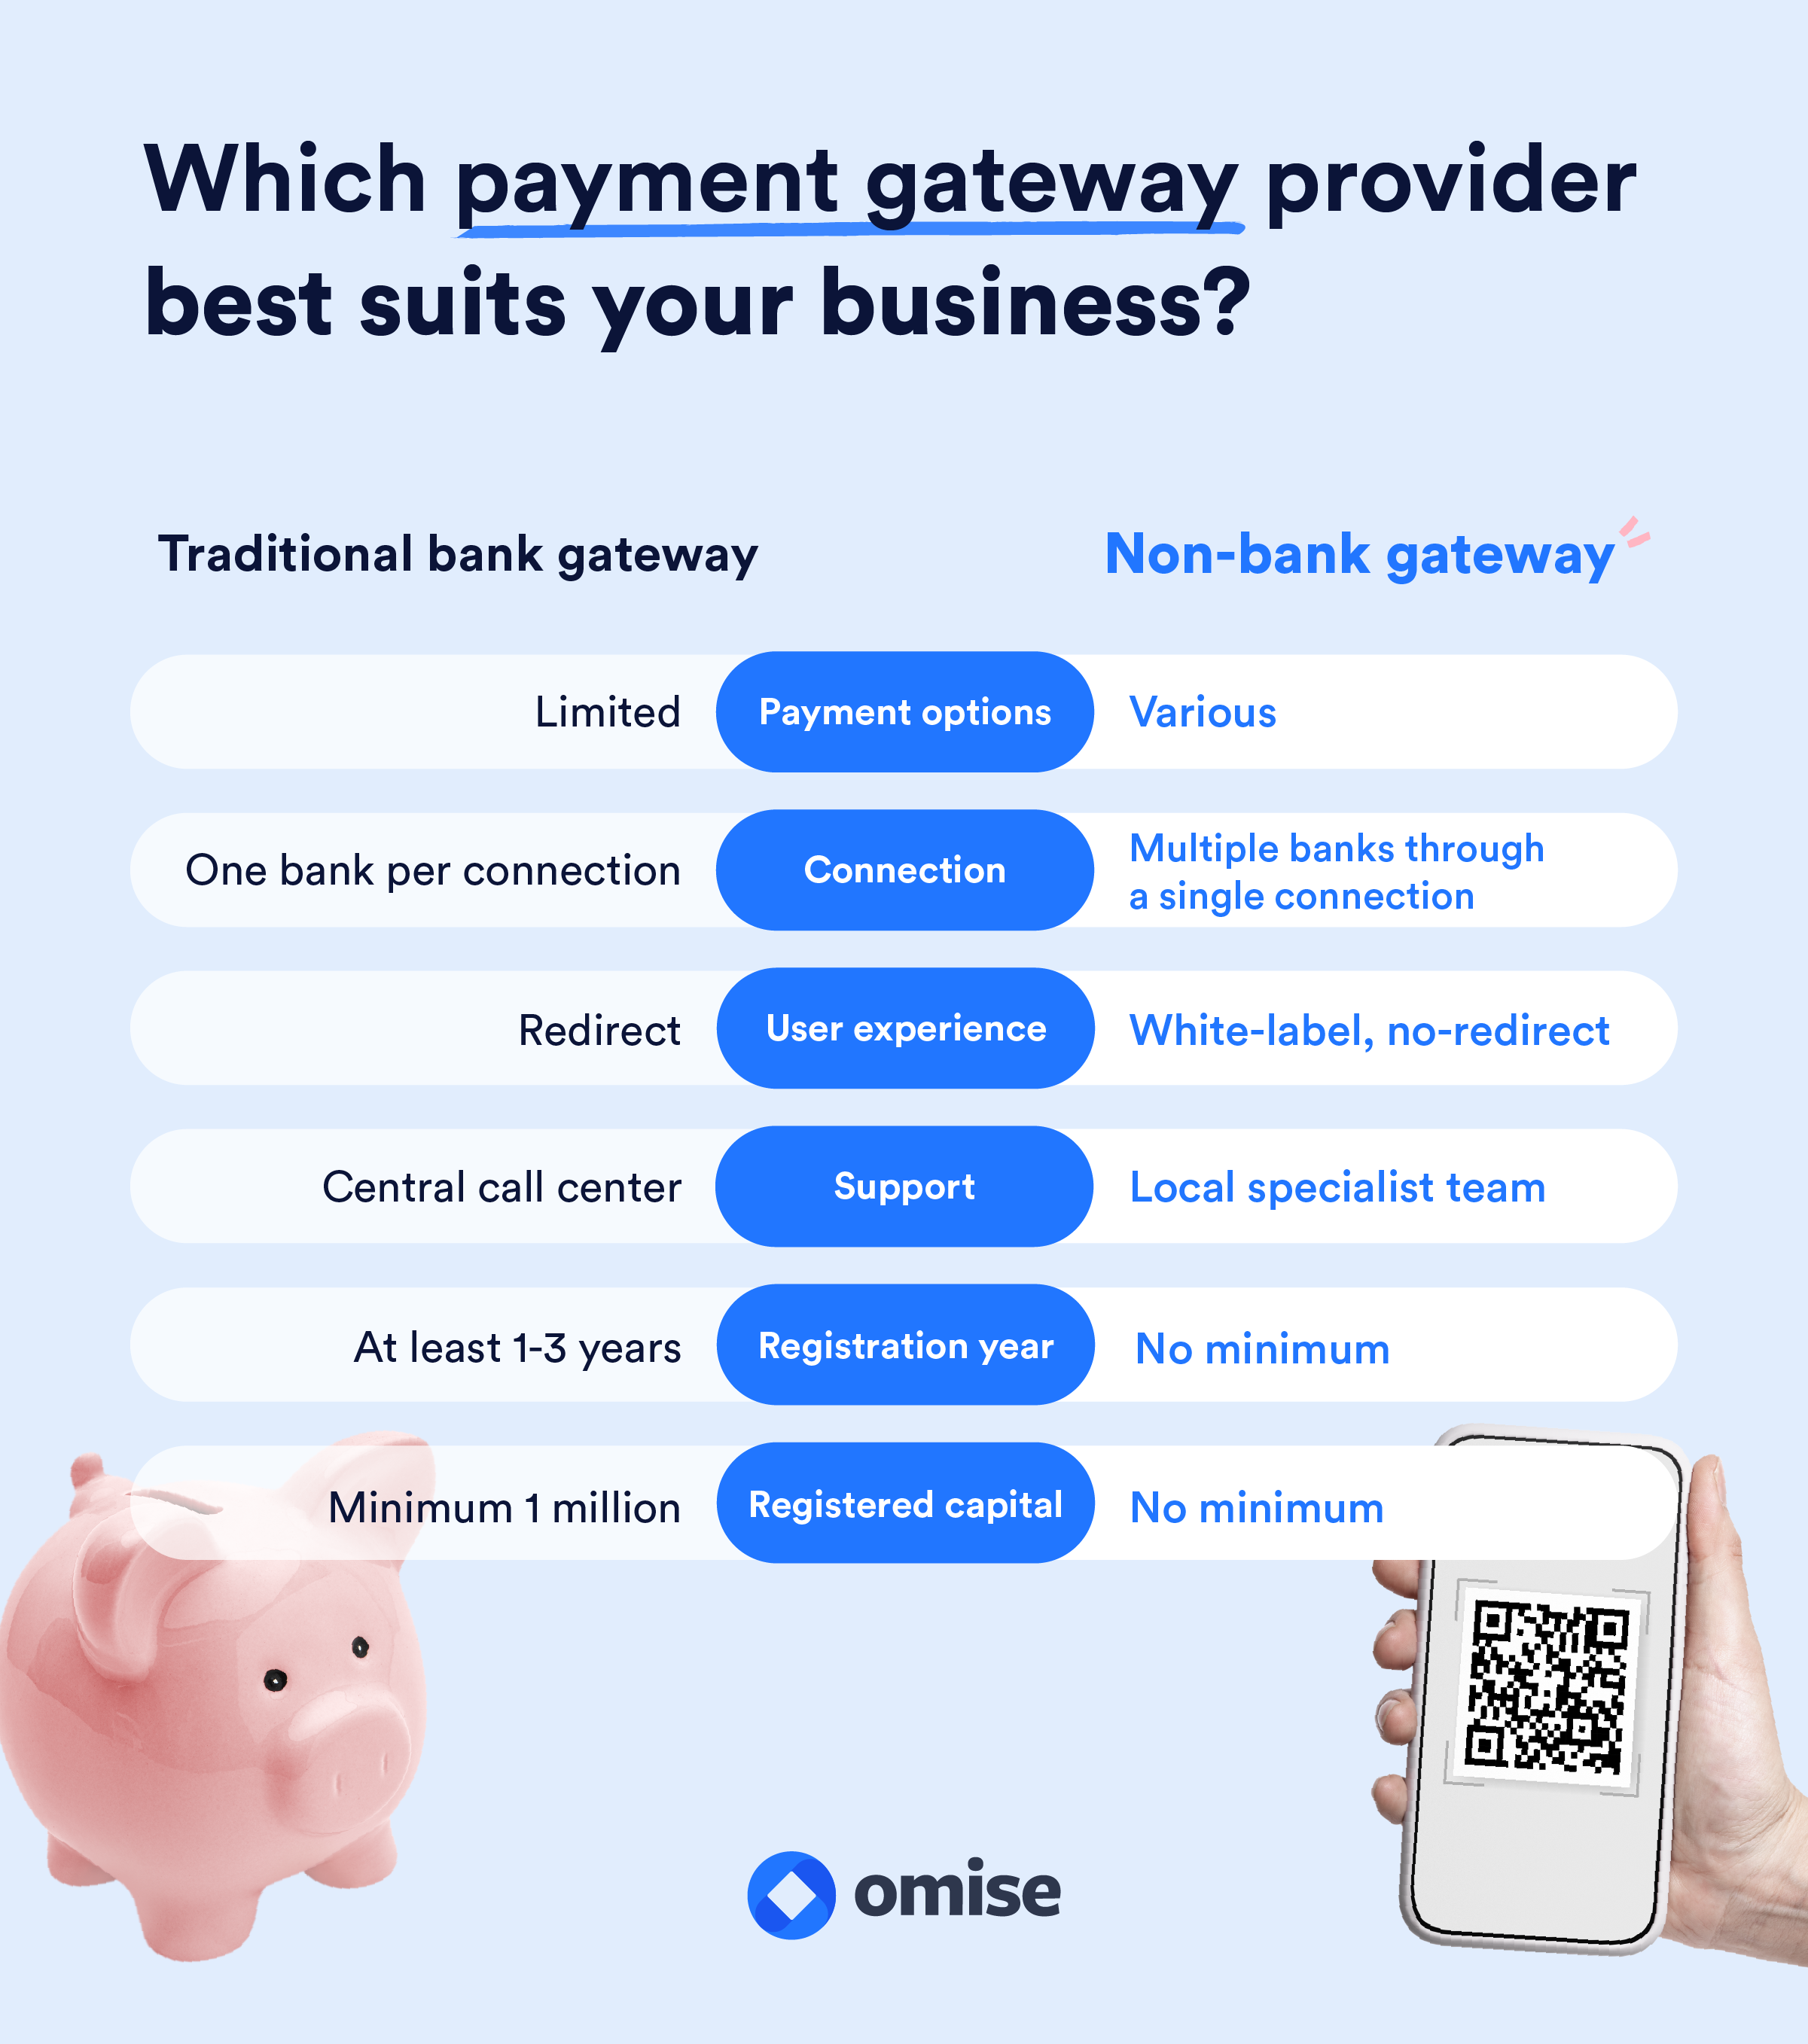 which payment gateway provider best suits your business?